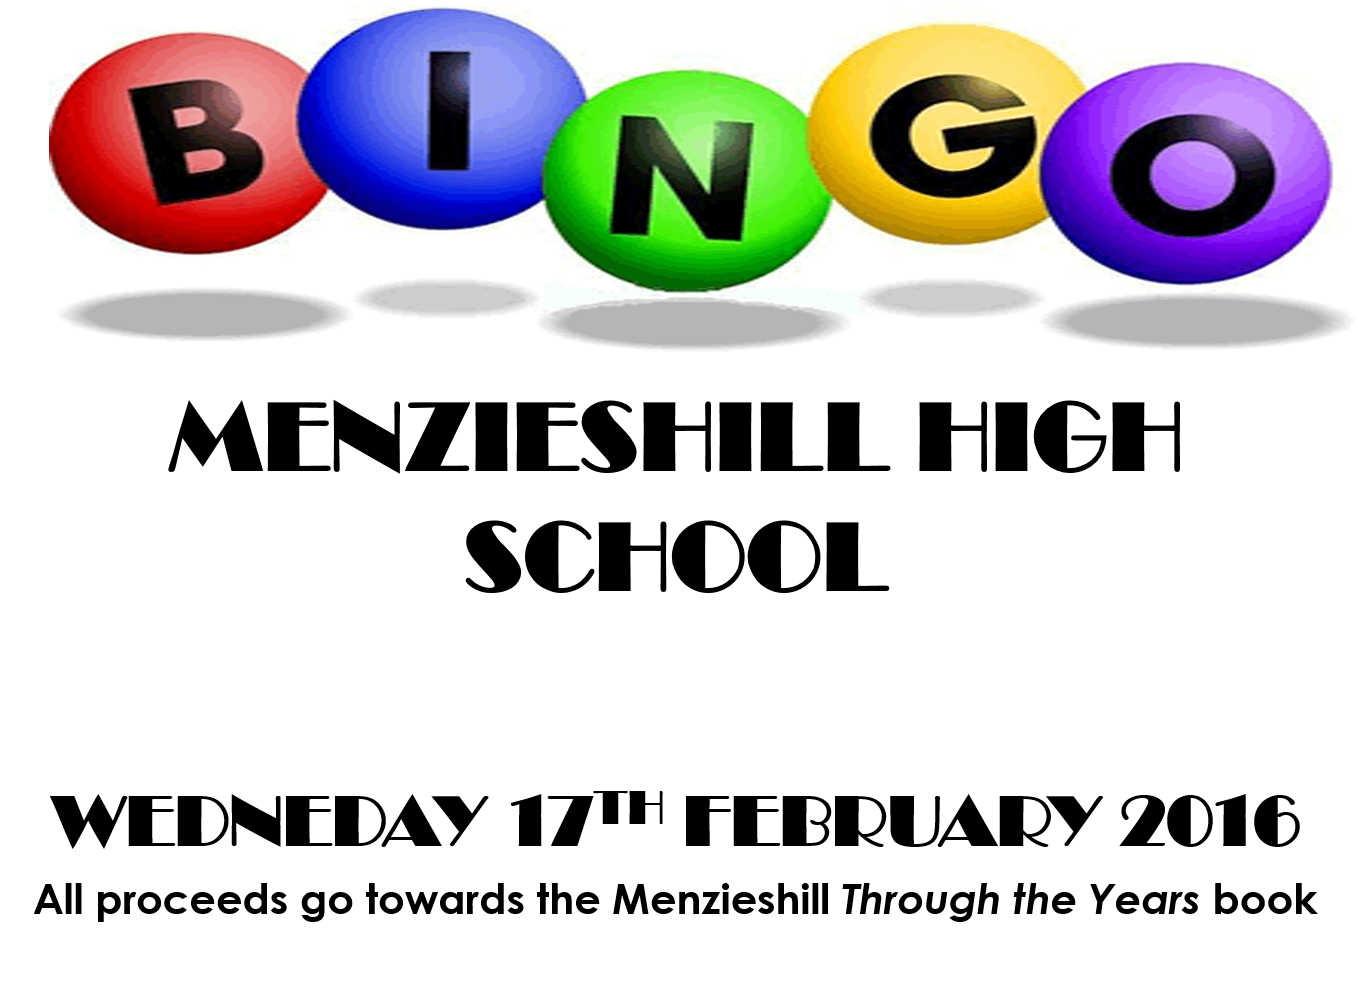 Bingo Evening - Wednesday 17 February 2016